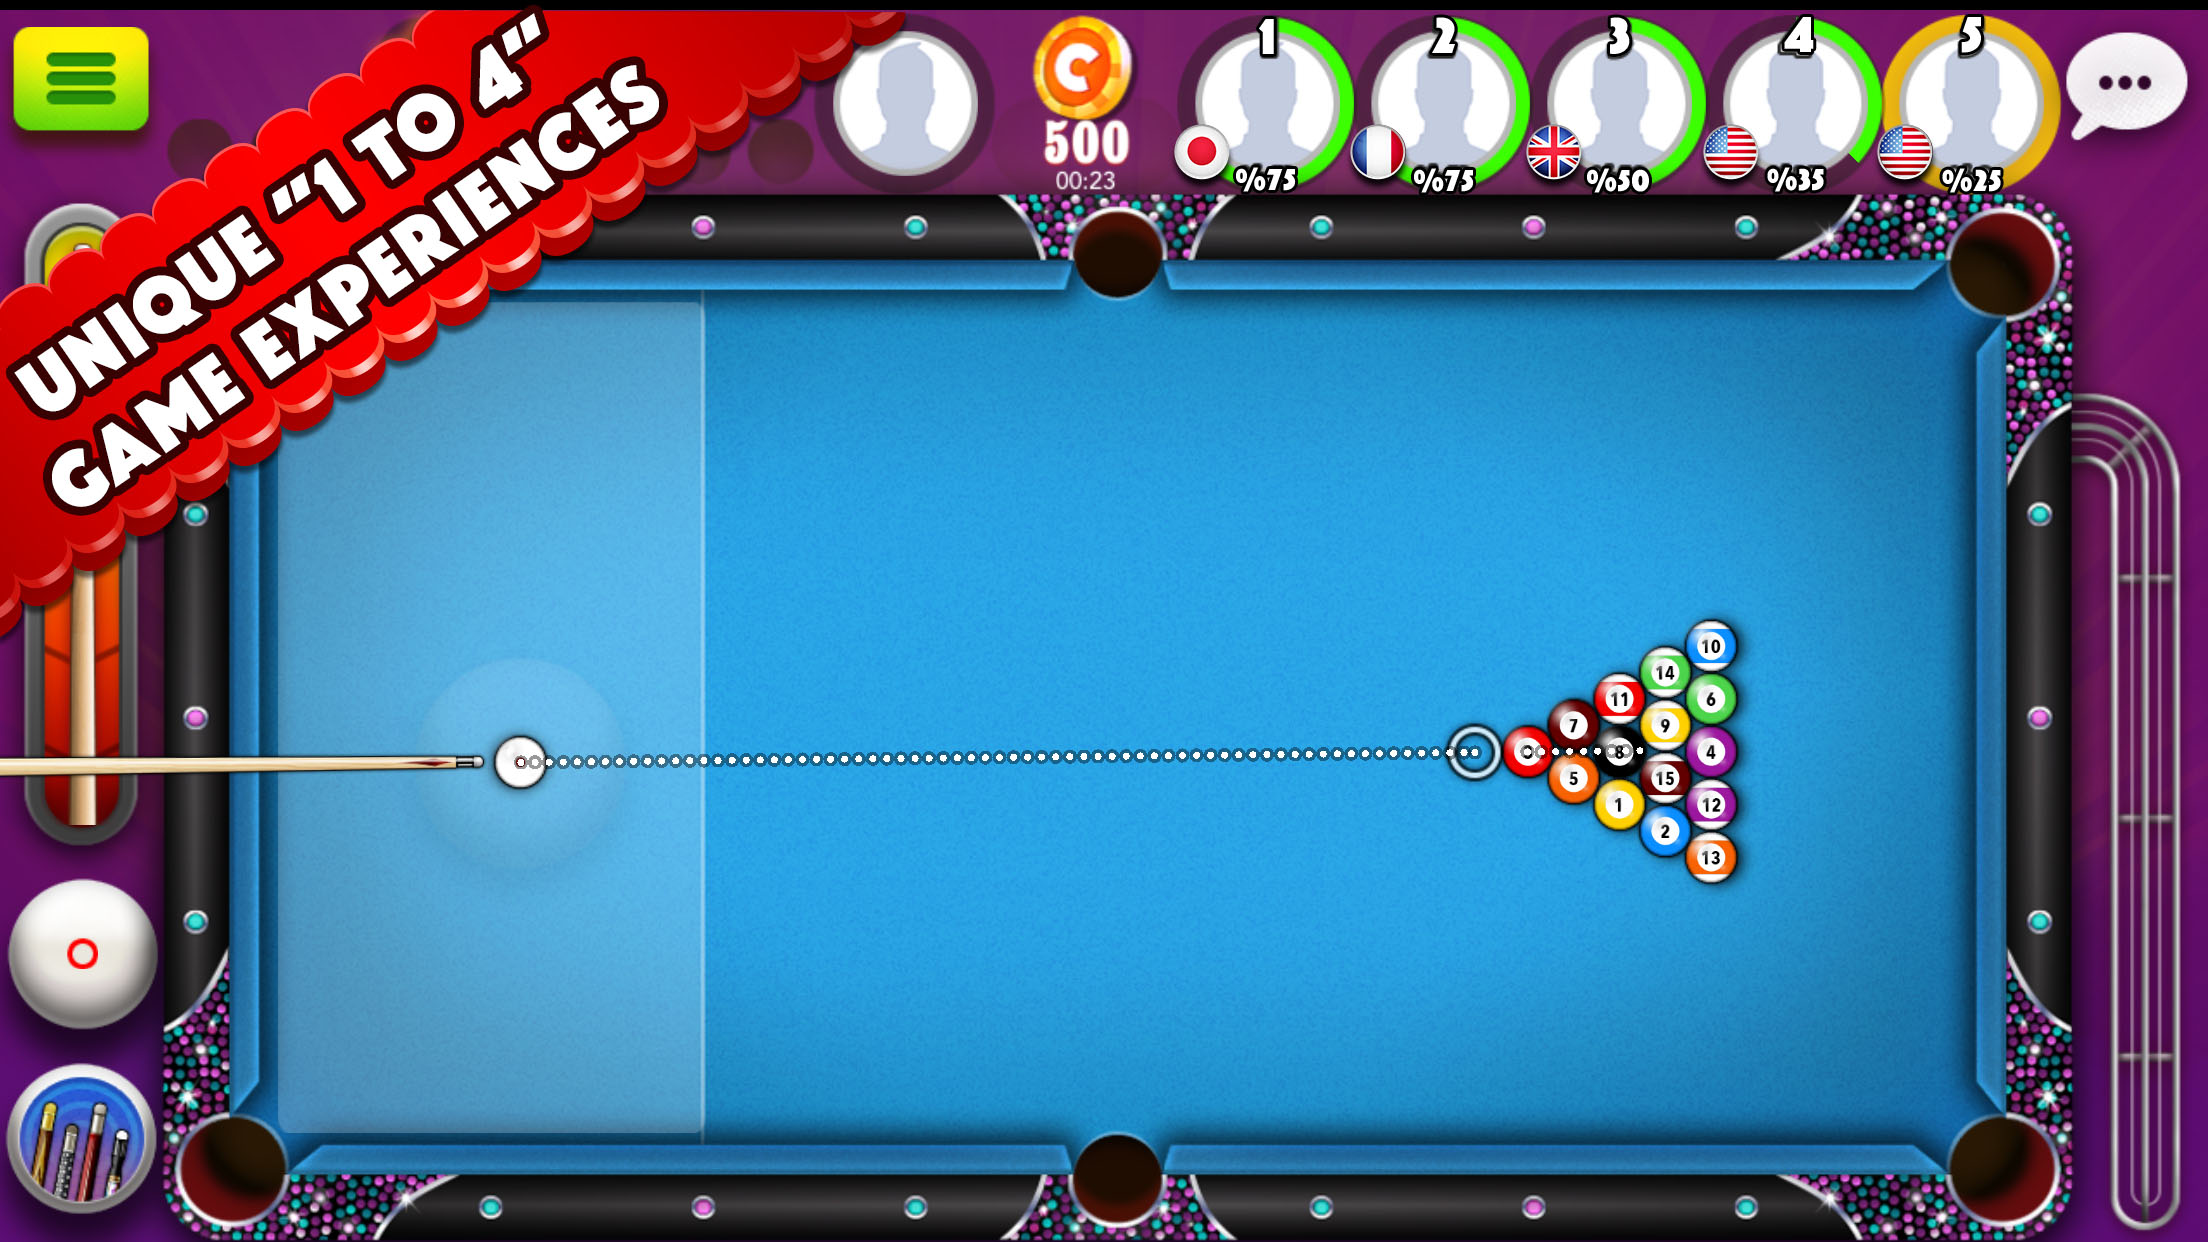 8 ball mobile app review